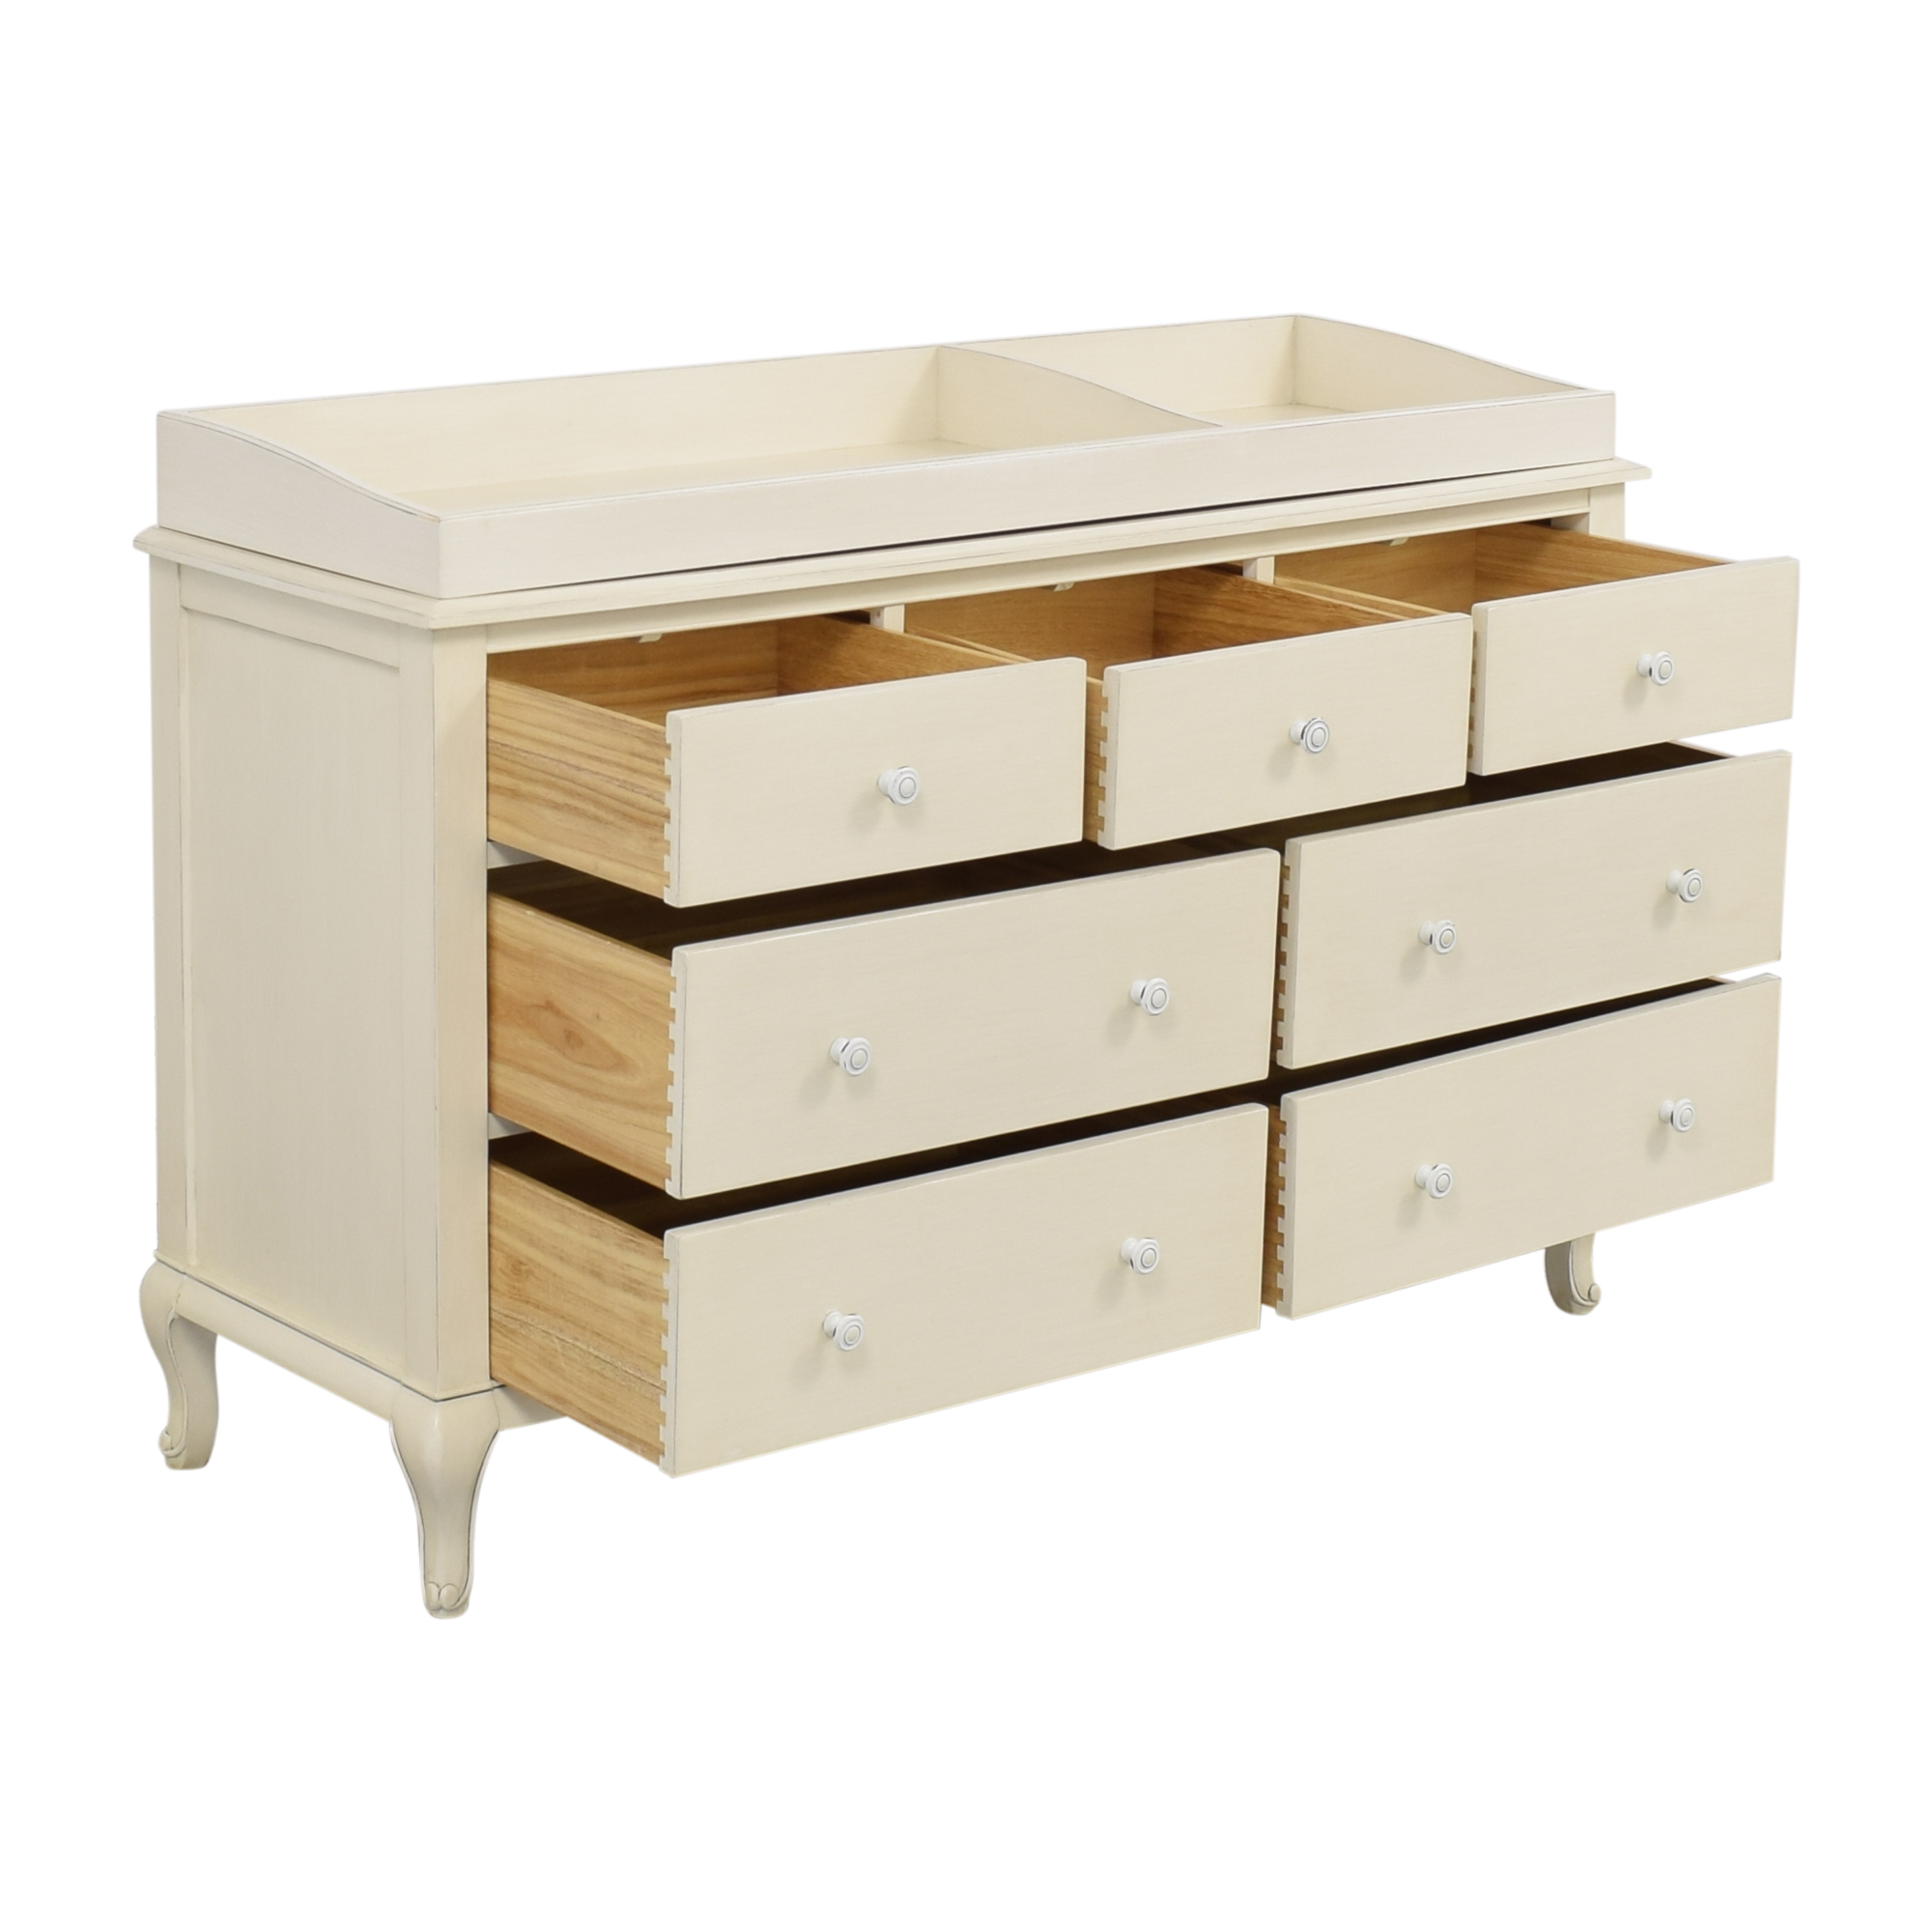 Restoration Hardware Restoration Hardware Adele Wide Dresser with Topper ma